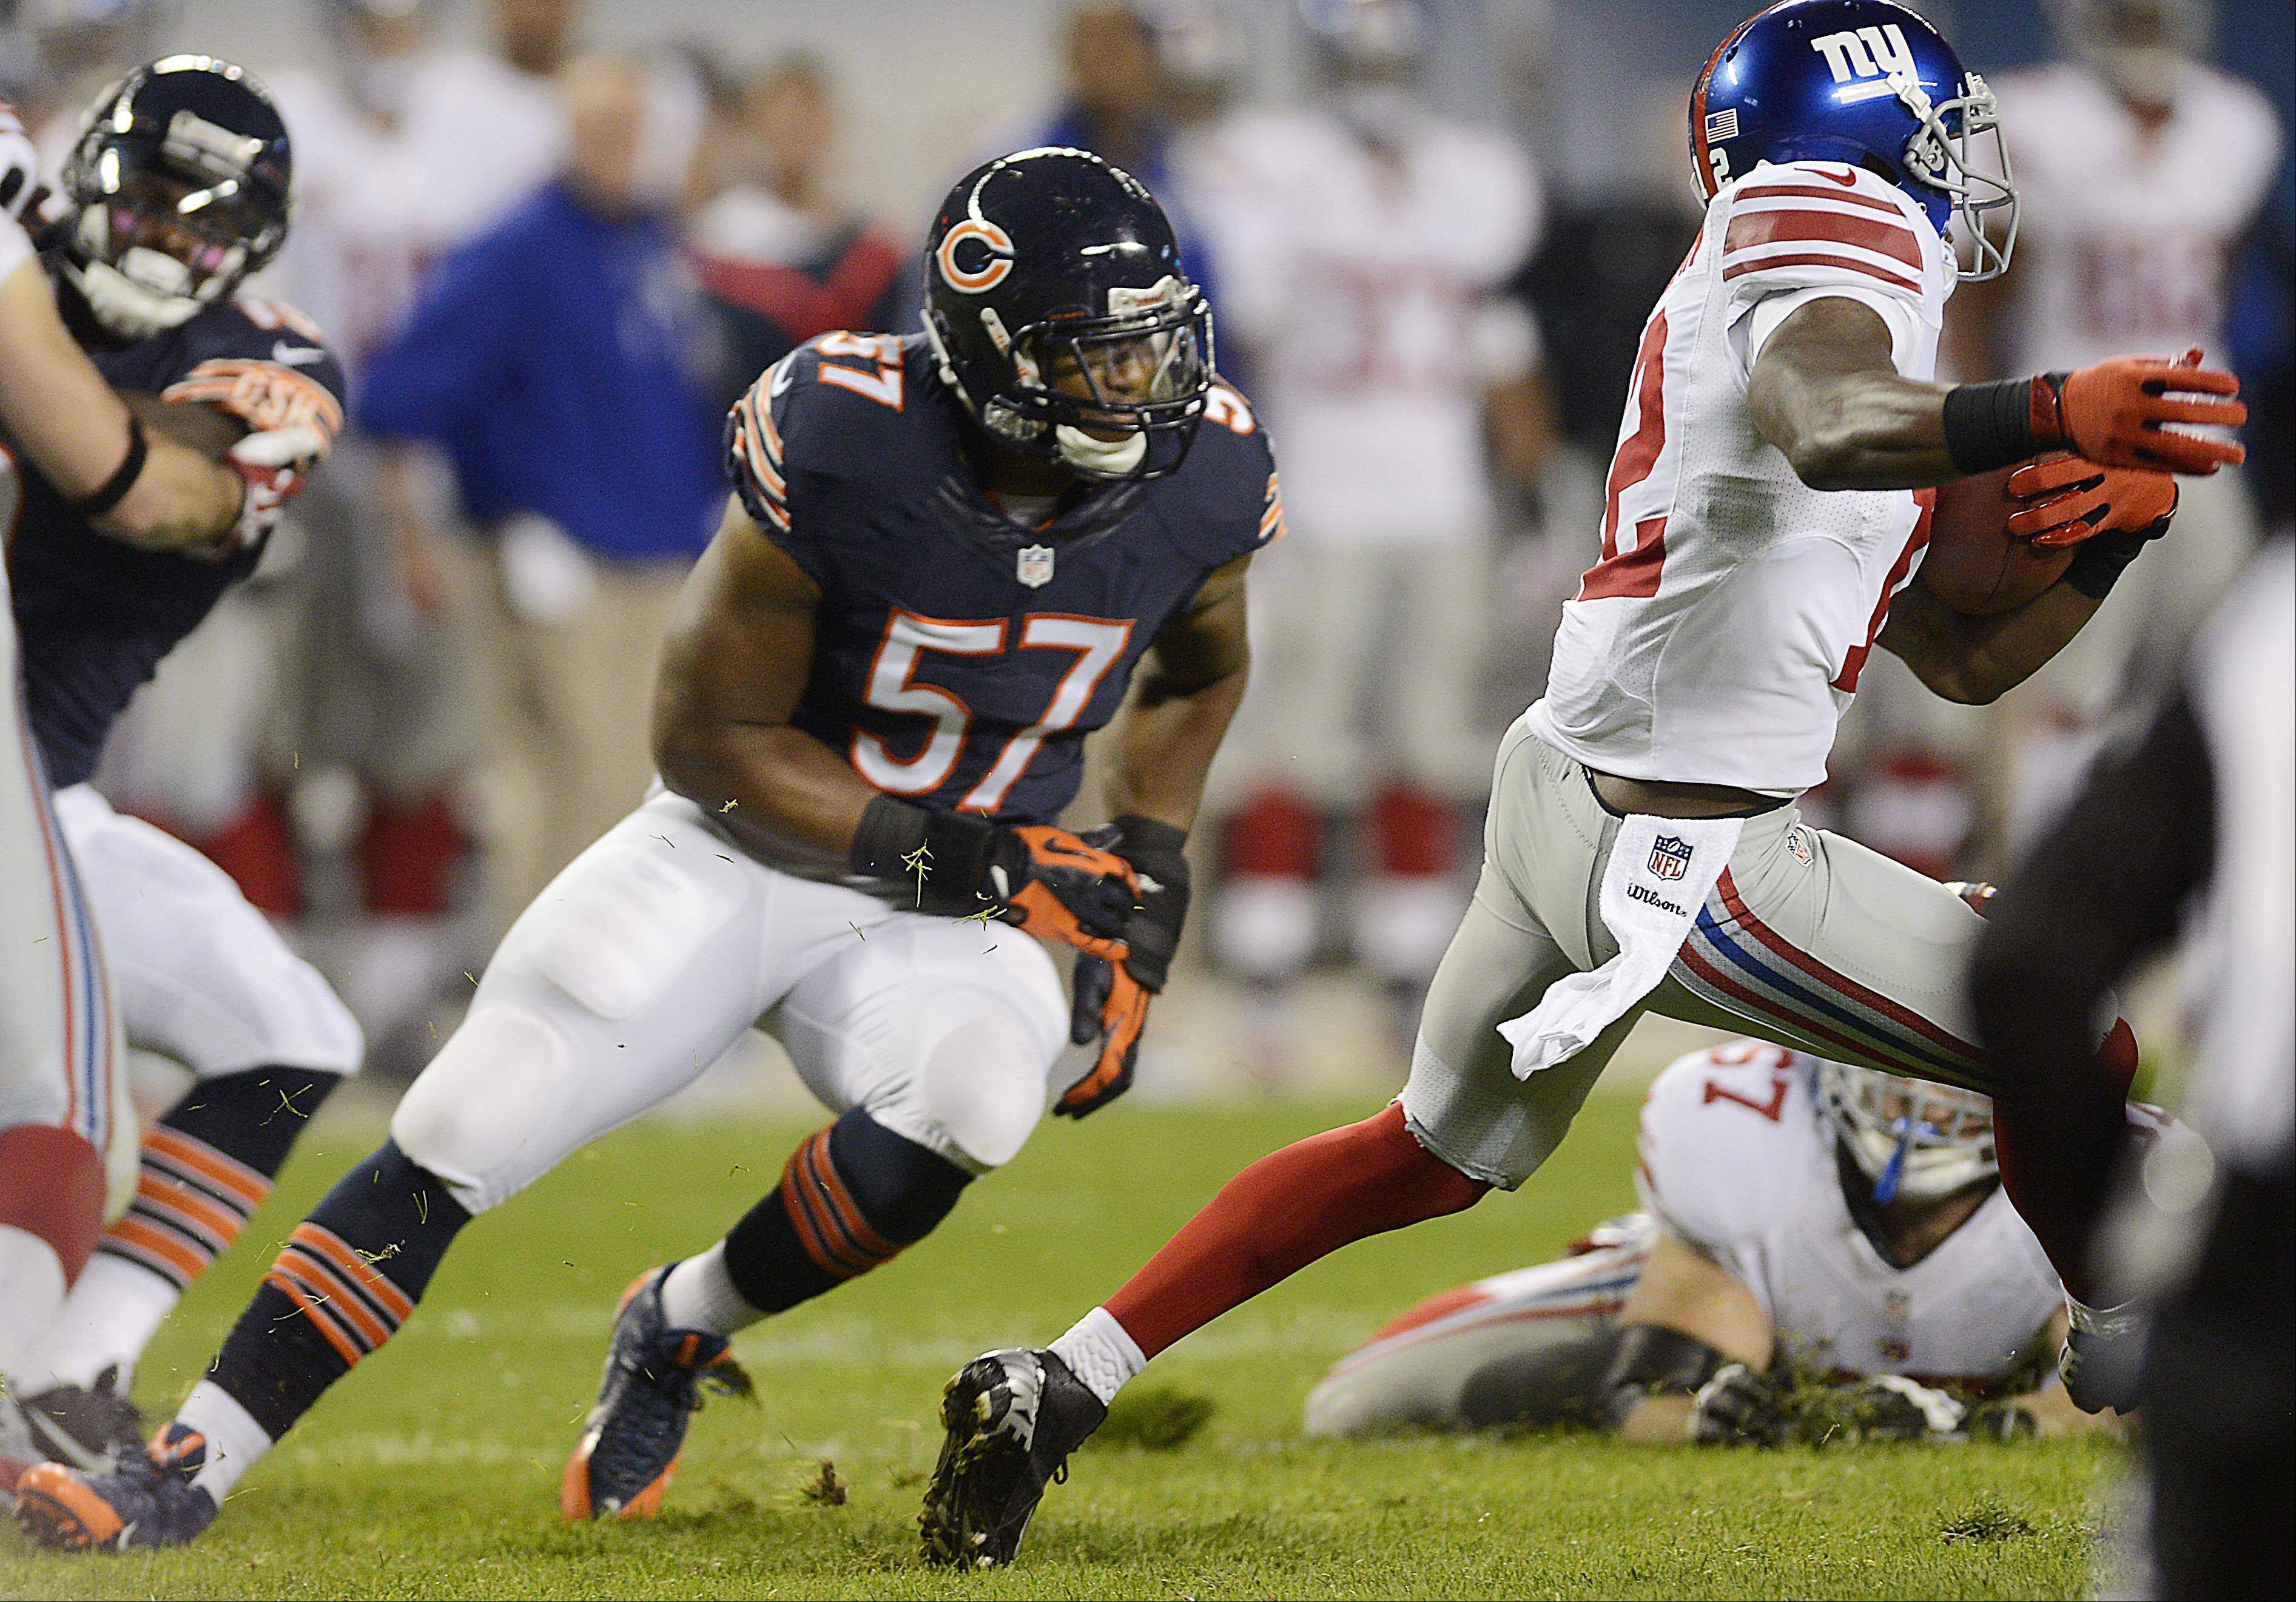 Bears rookie linebacker Jon Bostic chases New York Giants wide receiver Jerrel Jernigan Thursday night at Soldier Field in Chicago. Bostic had 1 tackle in the game.